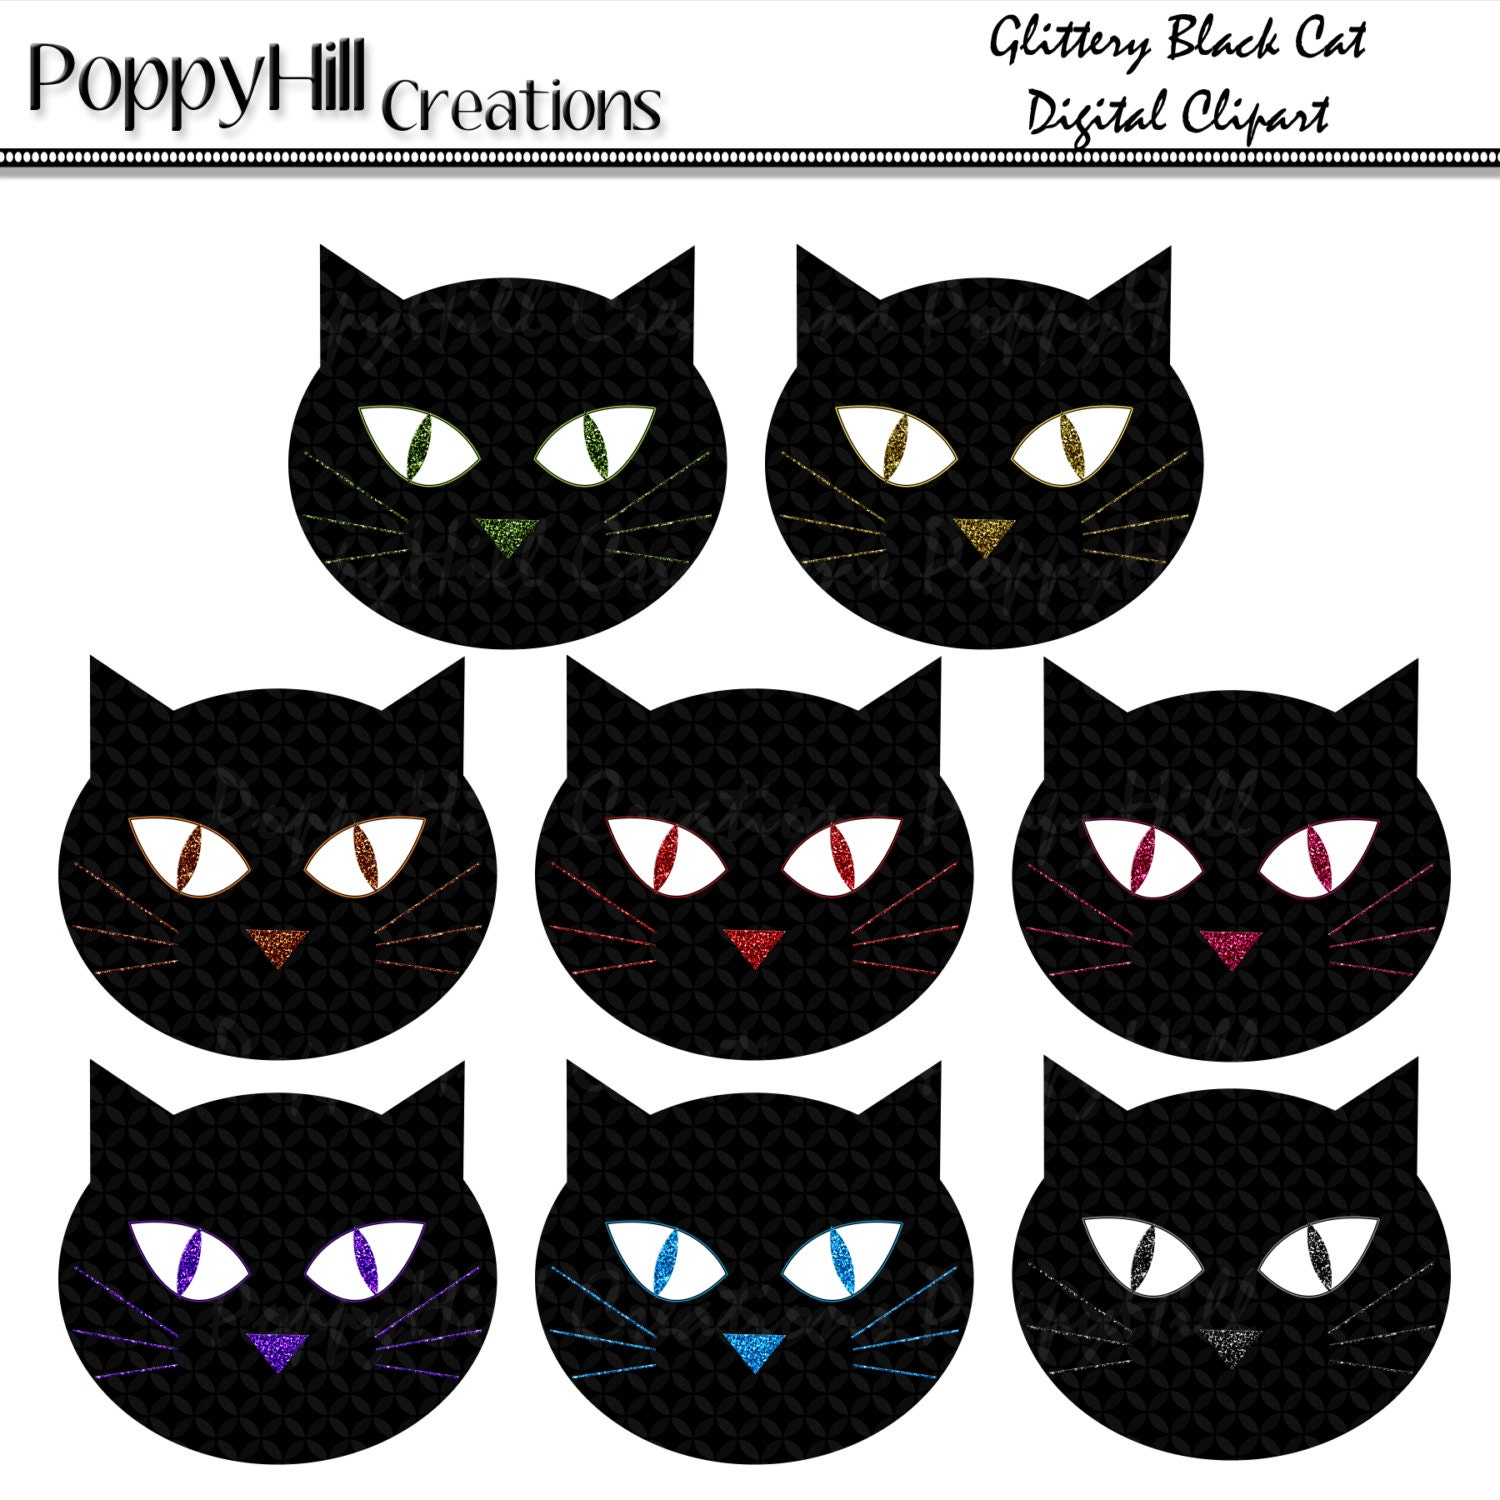 INSTANT DOWNLOAD - Printable Glittery Black Cat Digital Clip Art - For Commercial and Personal Use - Digital Design - PoppyHillCreations